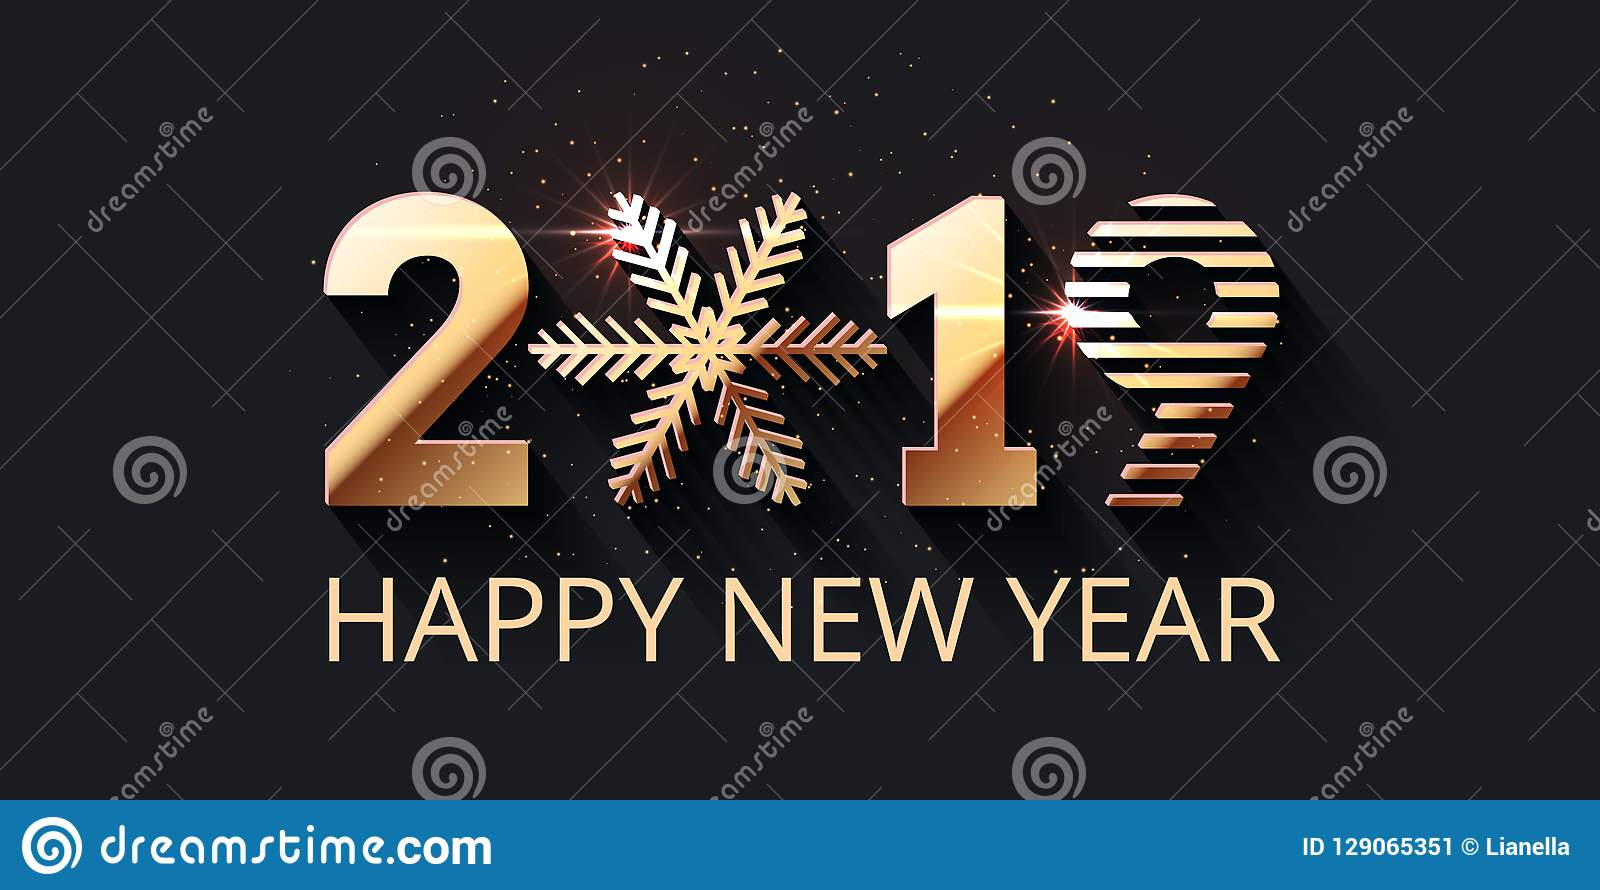 Happy New Year 2019 Gold Text Design Stock Vector ...